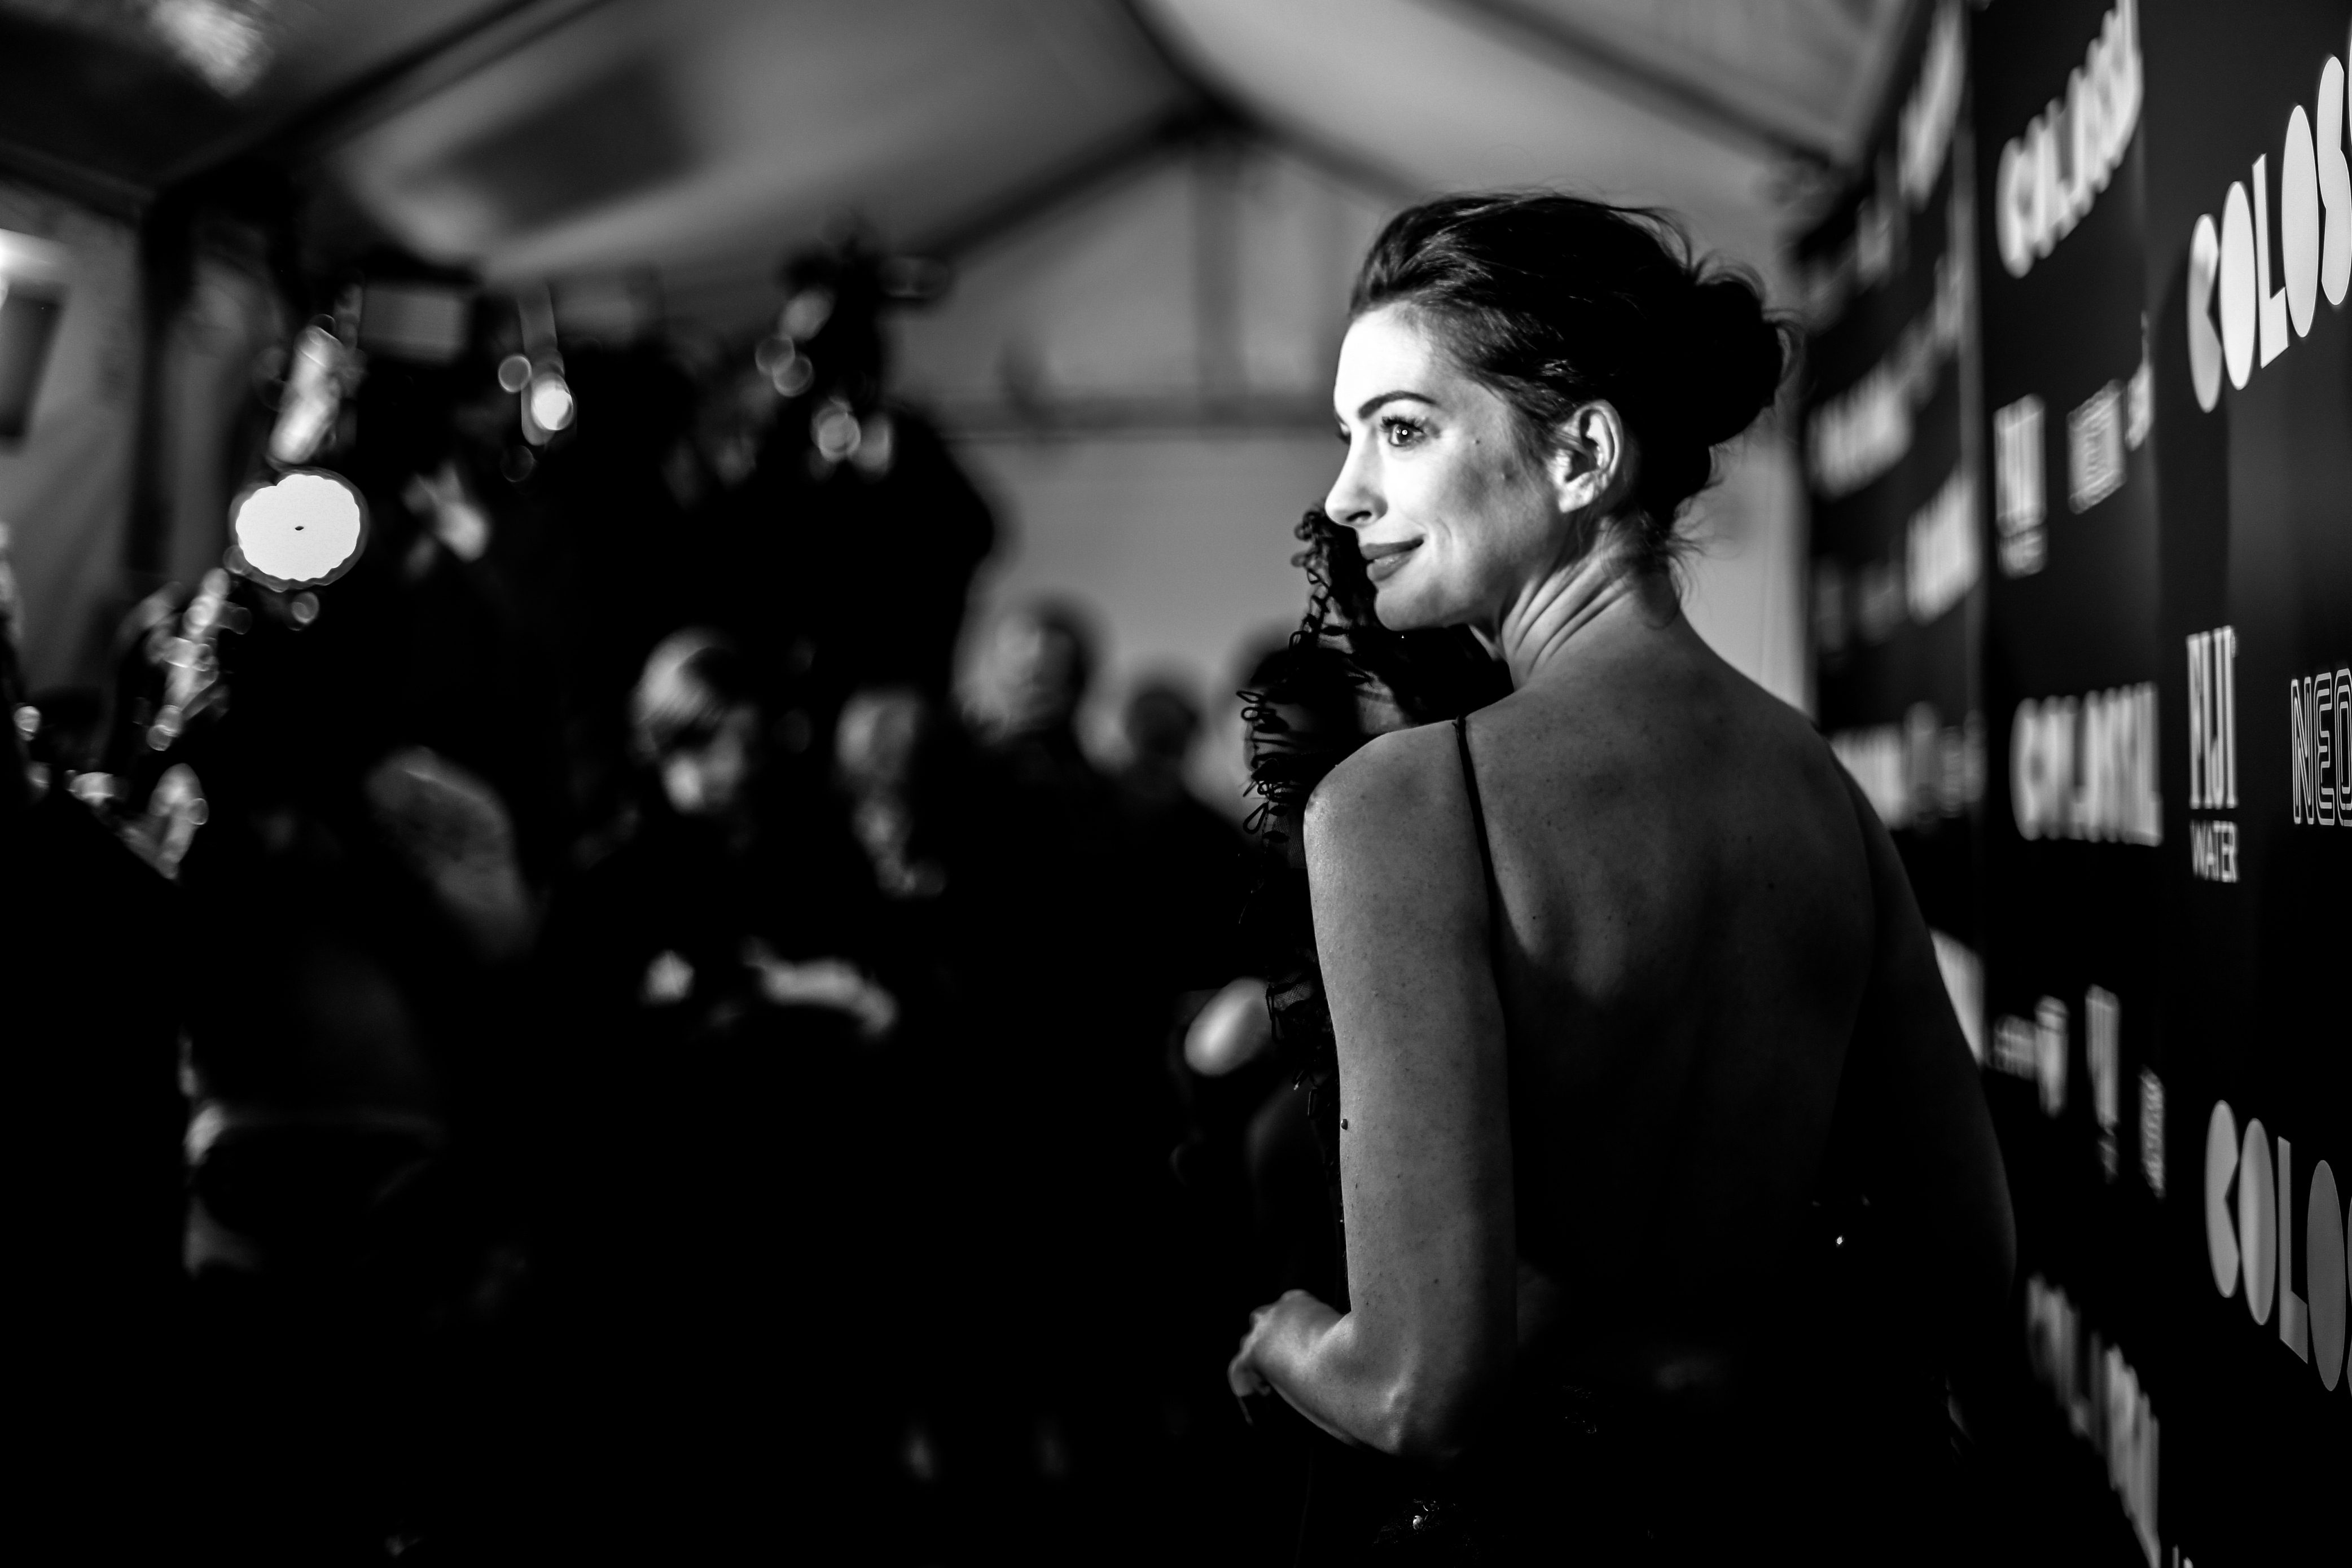 Anne Hathaway's love-hate-redemption publicity cycle is a familiar